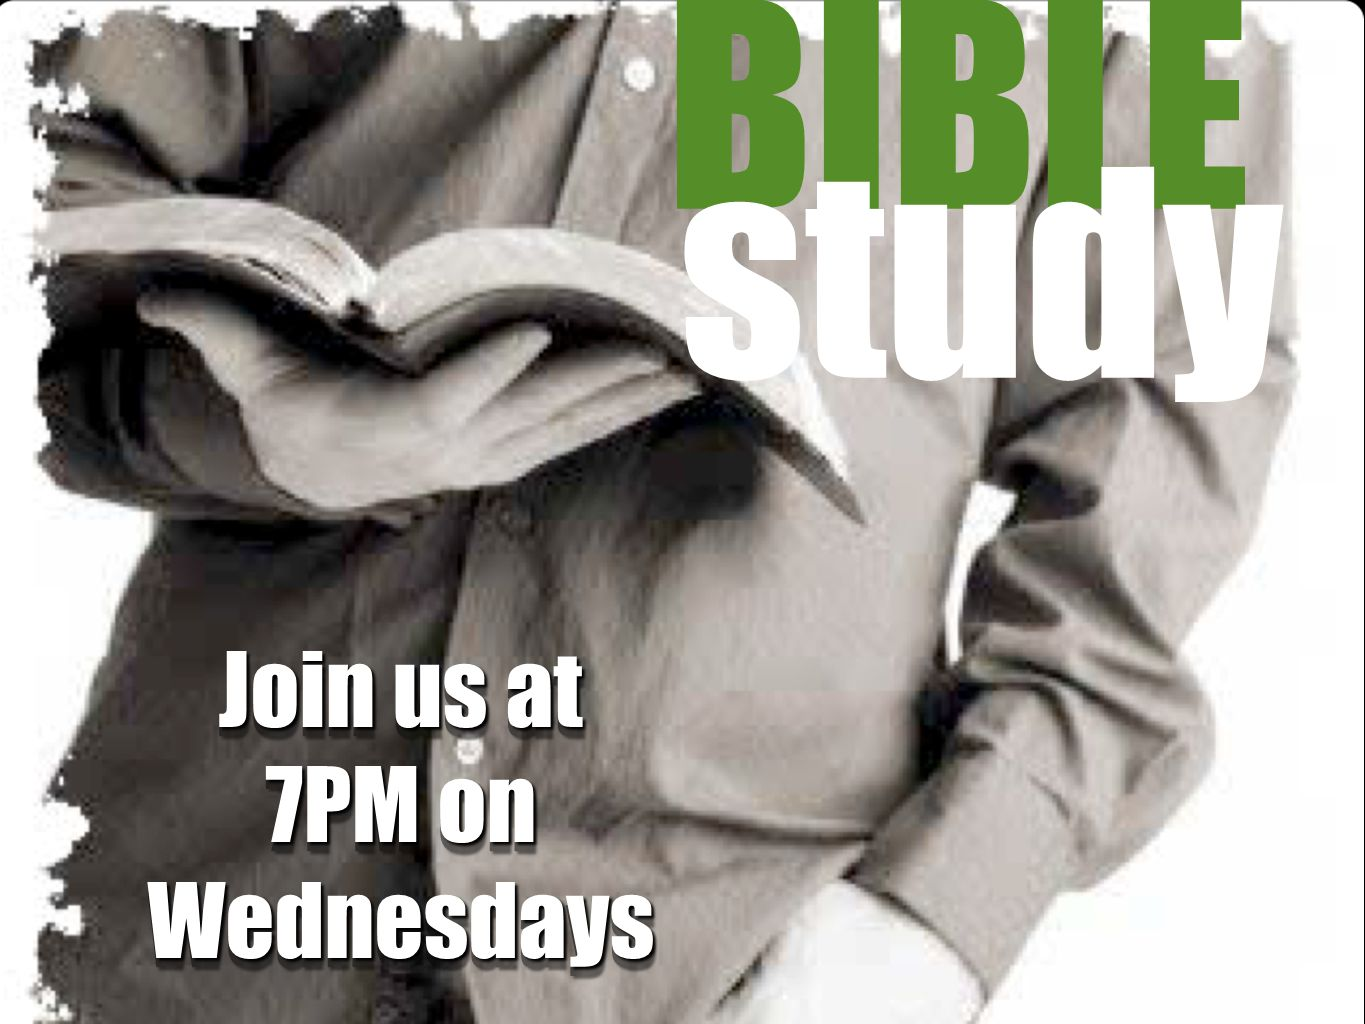 Join us at 7PM on Wednesdays